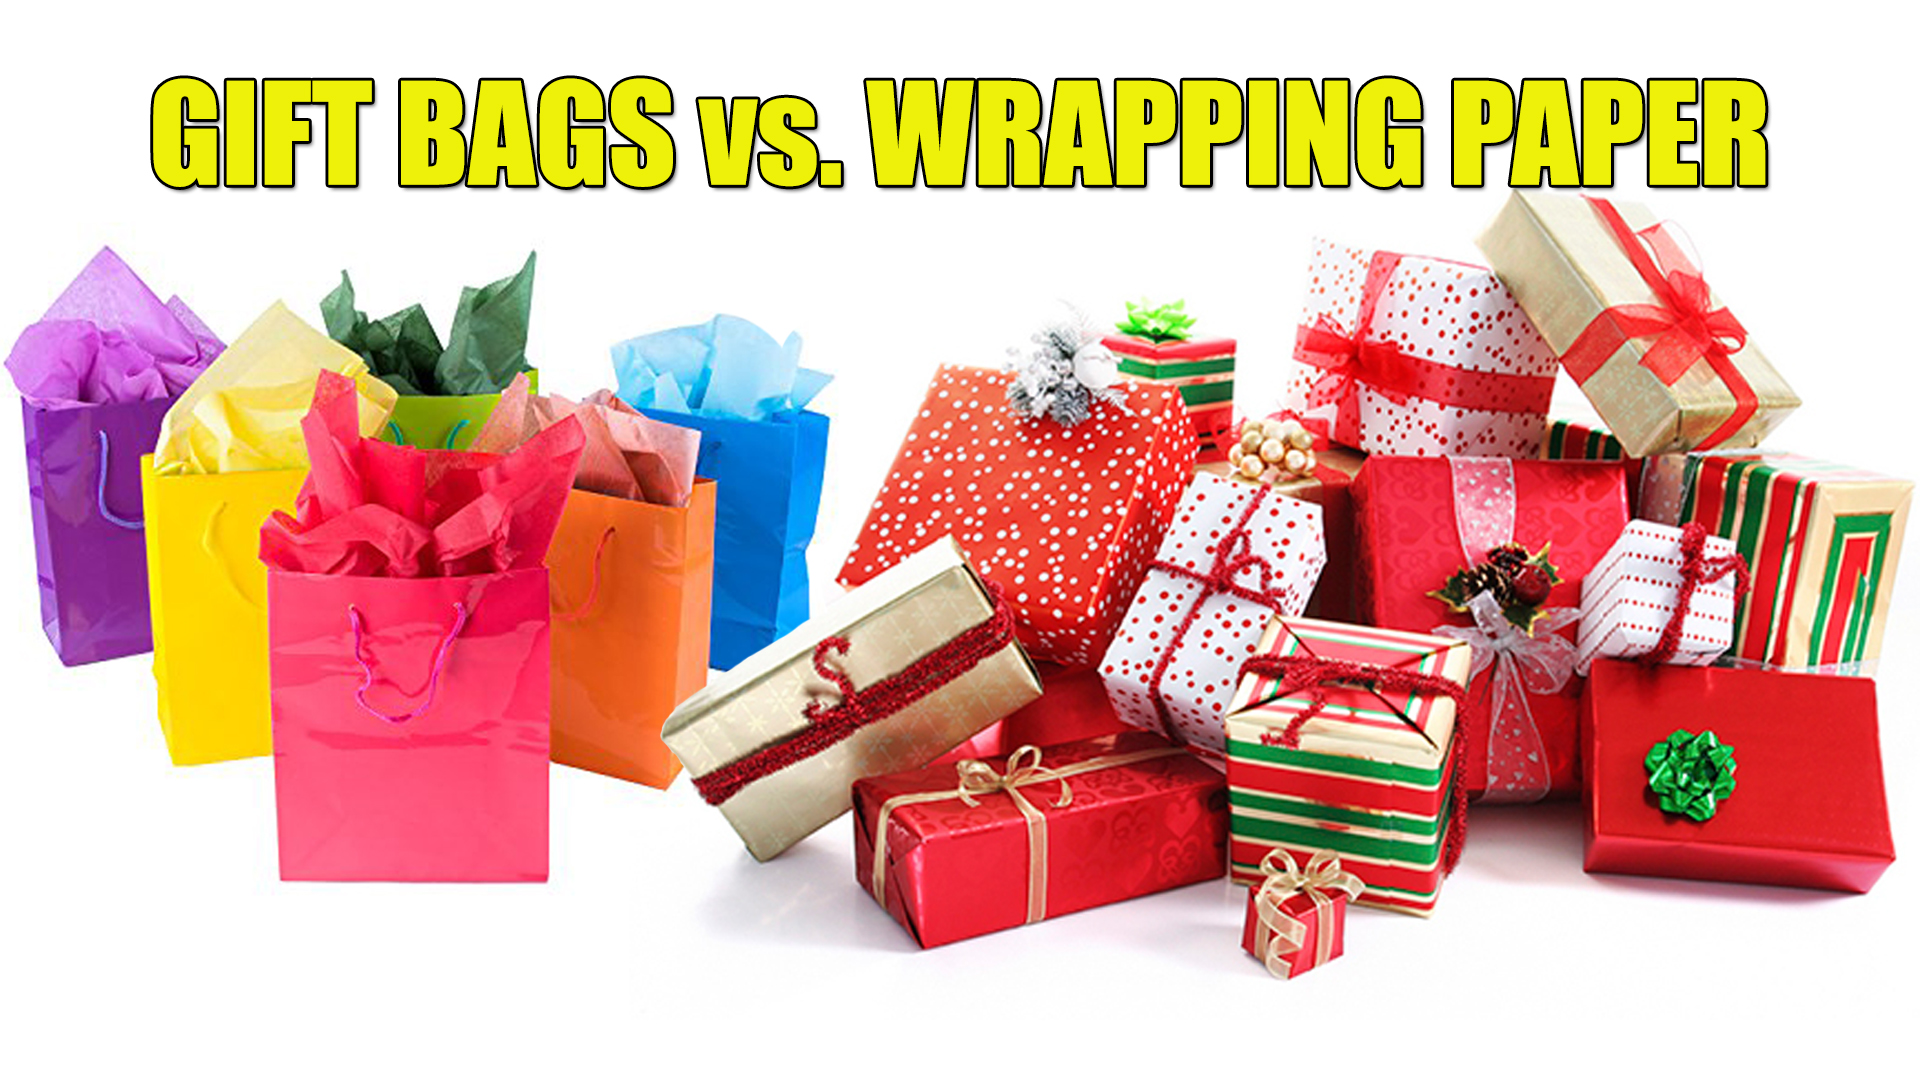 Gift Bags vs. Wrapping Paper